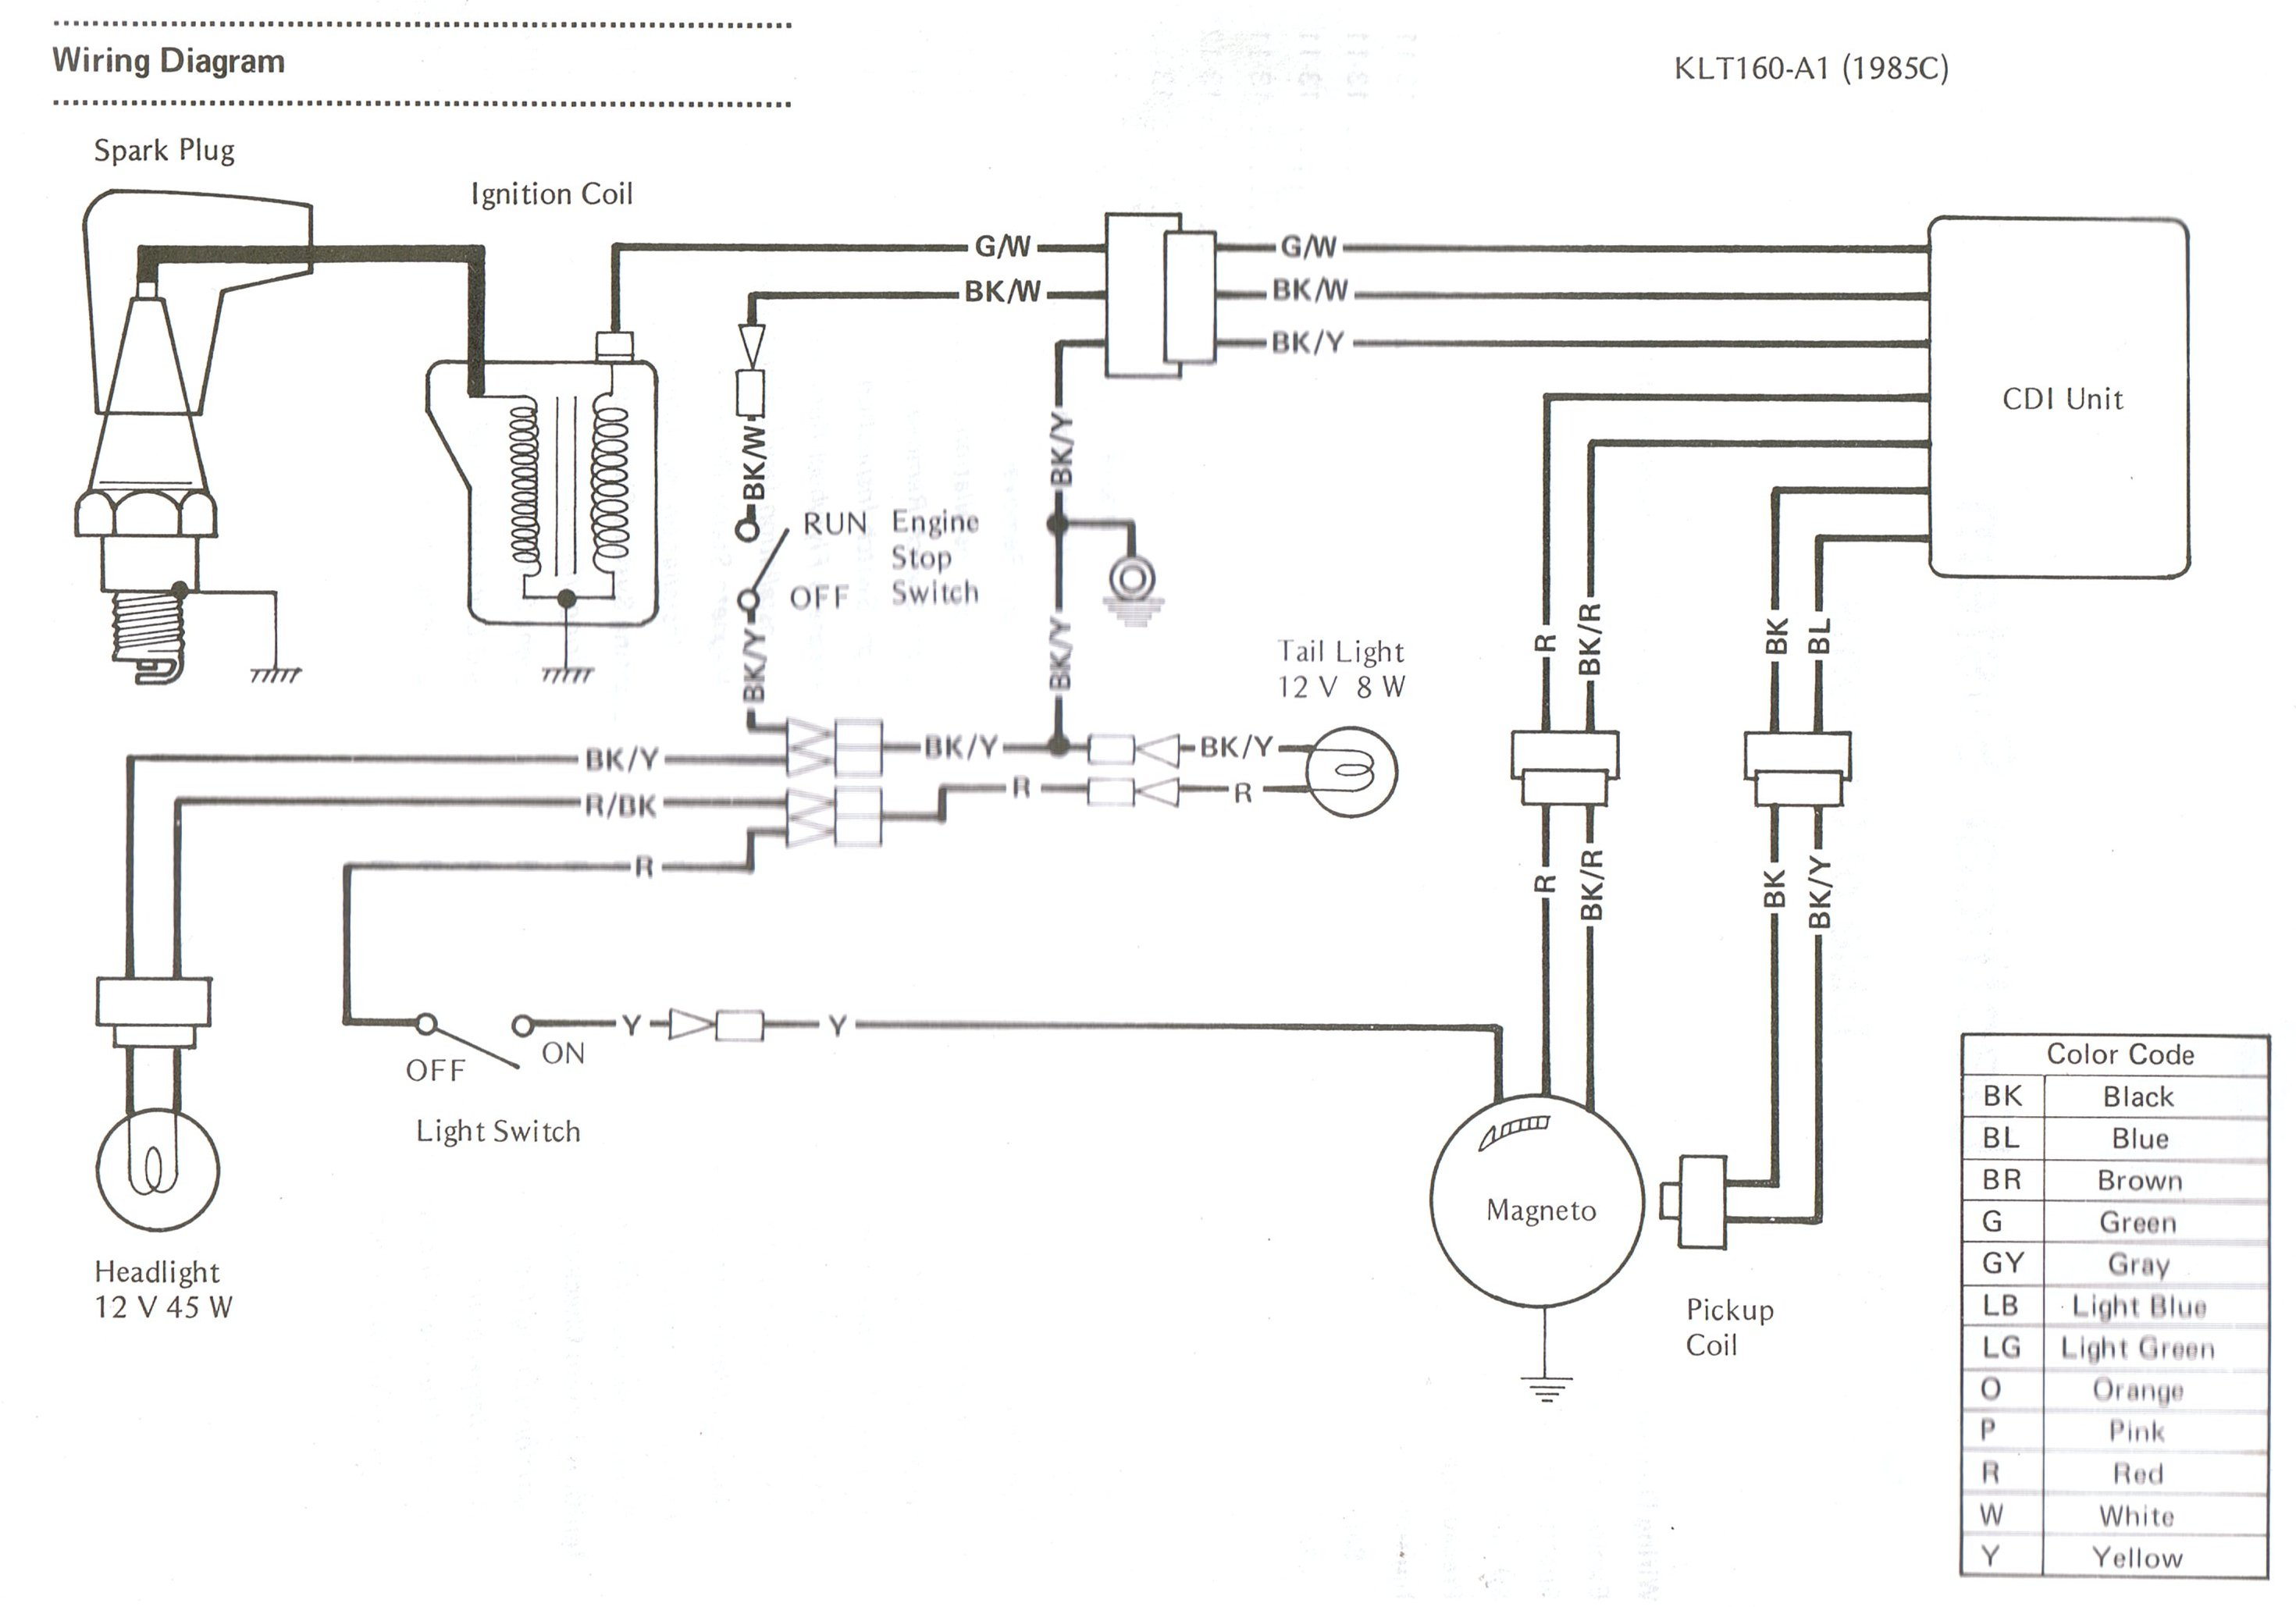 KLT160A1x85 3 wheeler world tech help kawasaki wiring diagrams wiring diagram 1985 honda 250 fourtrax at bakdesigns.co